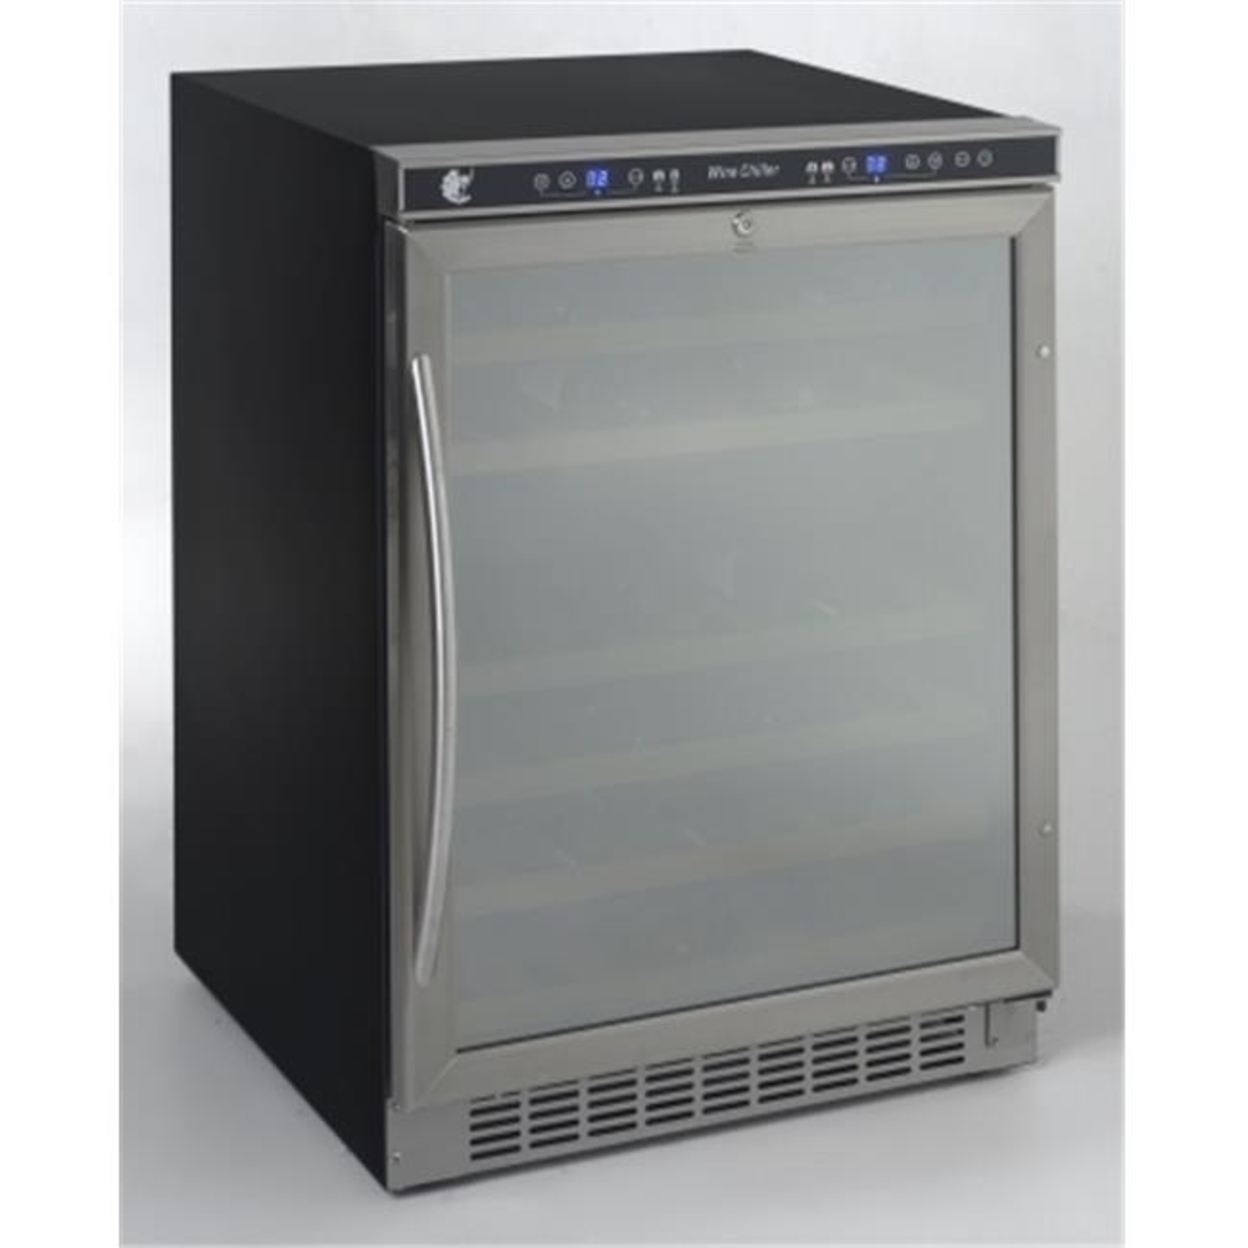 MAS Wcr5404Dzd 46 bottle dual zone built-in or free-standing wine cooler stainless steel frame with mirror finish door